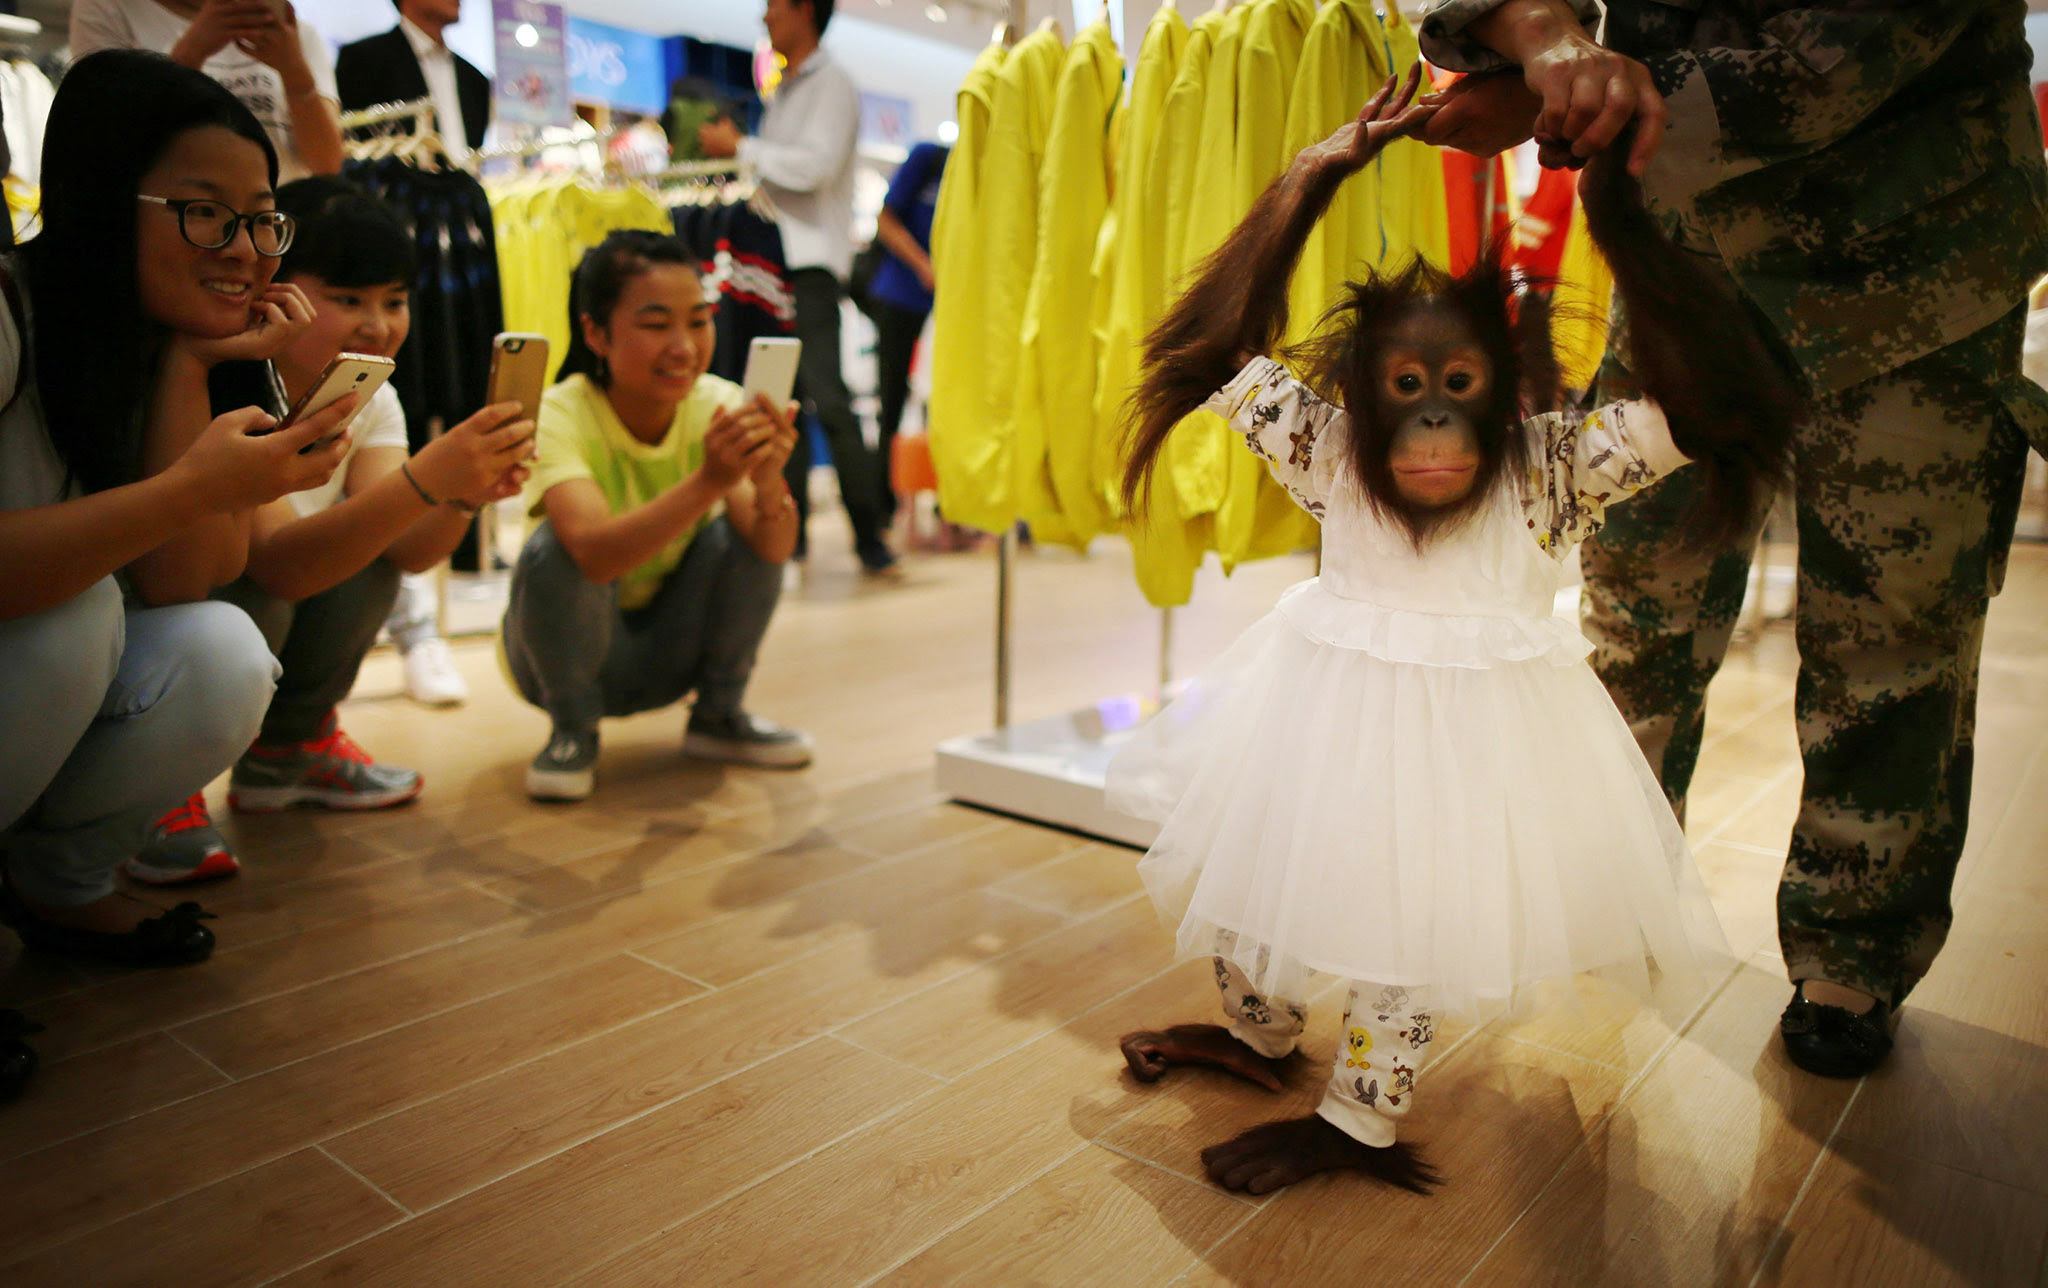 An orangutan tries a dress at a shopping mall in Kunming, Yunnan province, China  August 24, 2016. China Daily/via REUTERS     ATTENTION EDITORS - THIS IMAGE WAS PROVIDED BY A THIRD PARTY. EDITORIAL USE ONLY. CHINA OUT. NO COMMERCIAL OR EDITORIAL SALES IN CHINA.